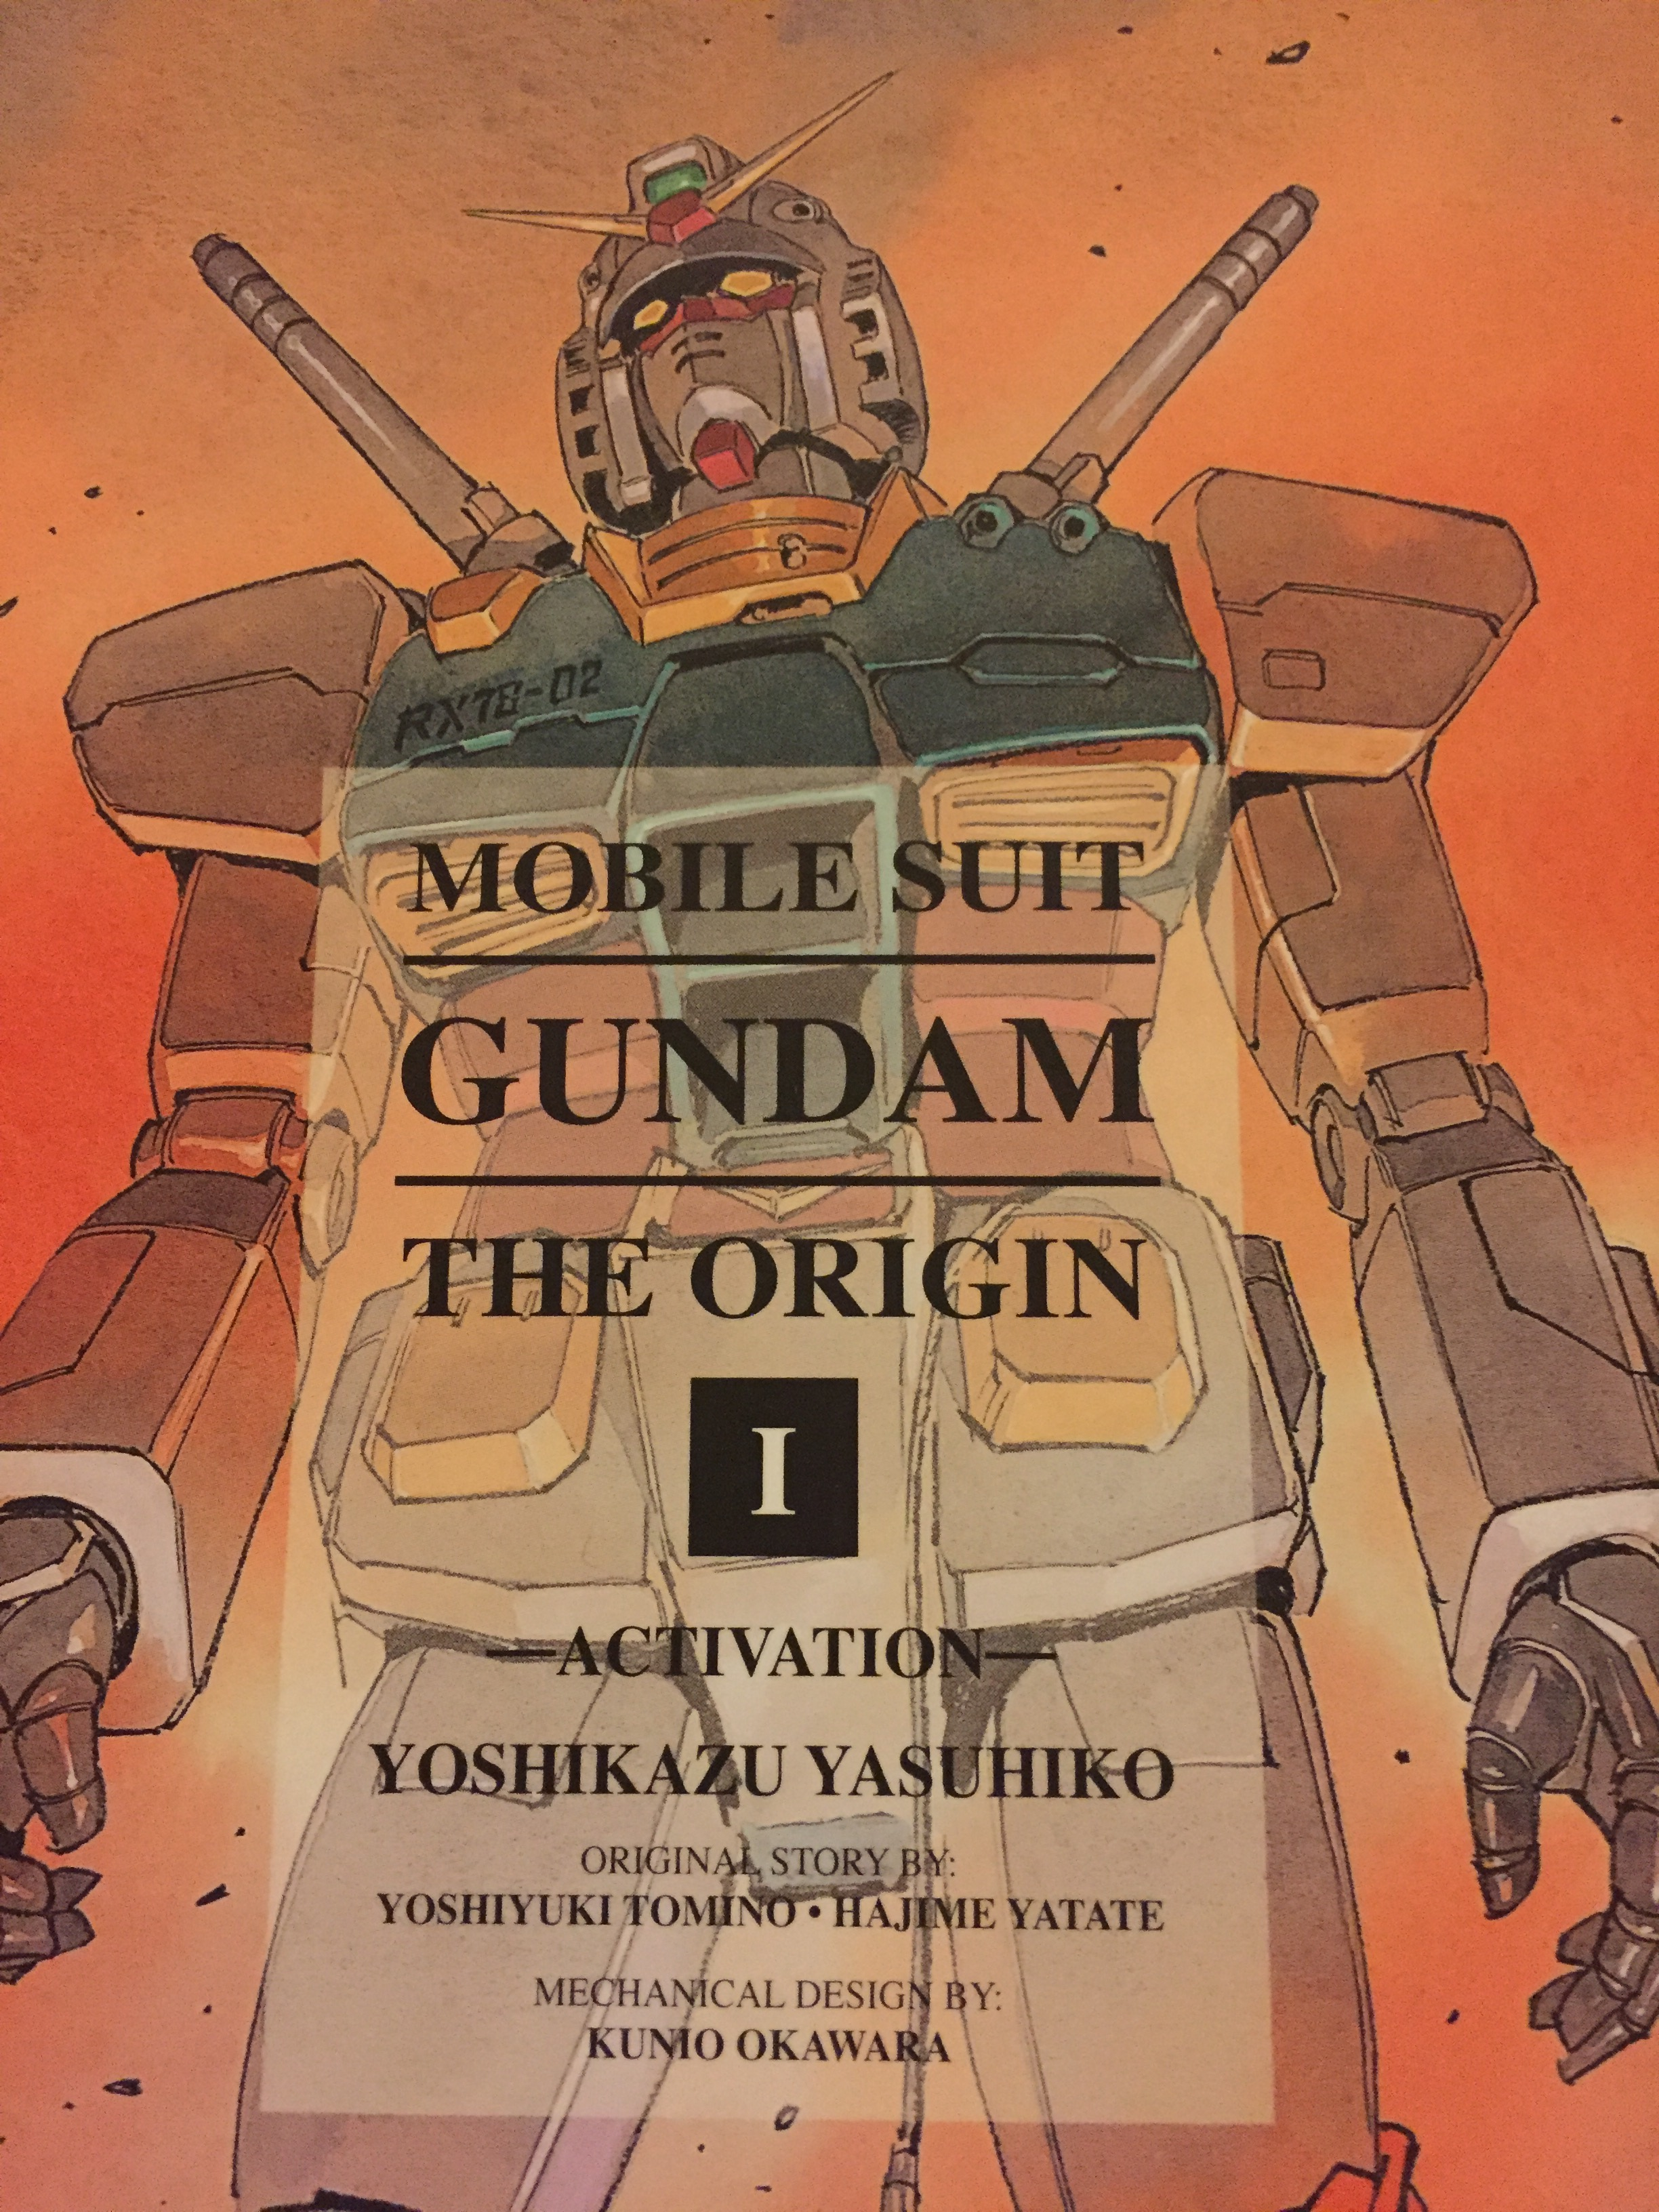 The cover to Mobile Suit Gundam Origin vol 1 Activation